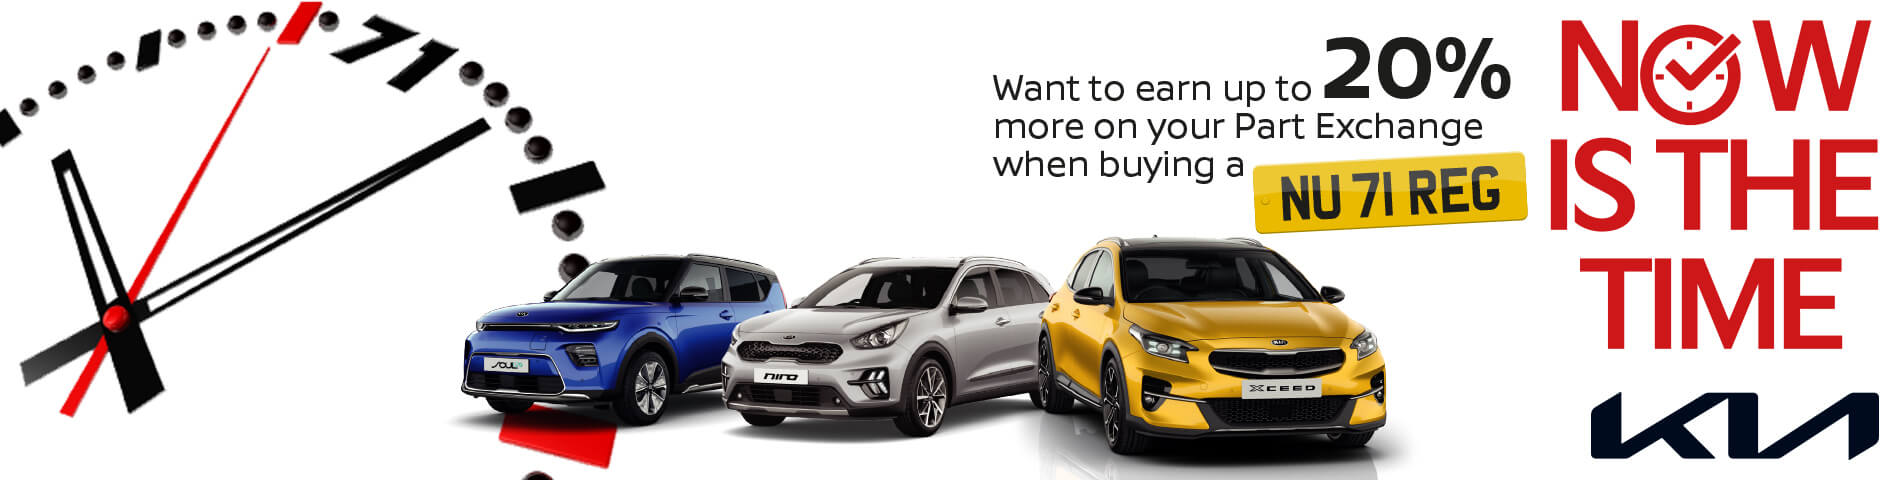 Howards Kia Now is the Time Event